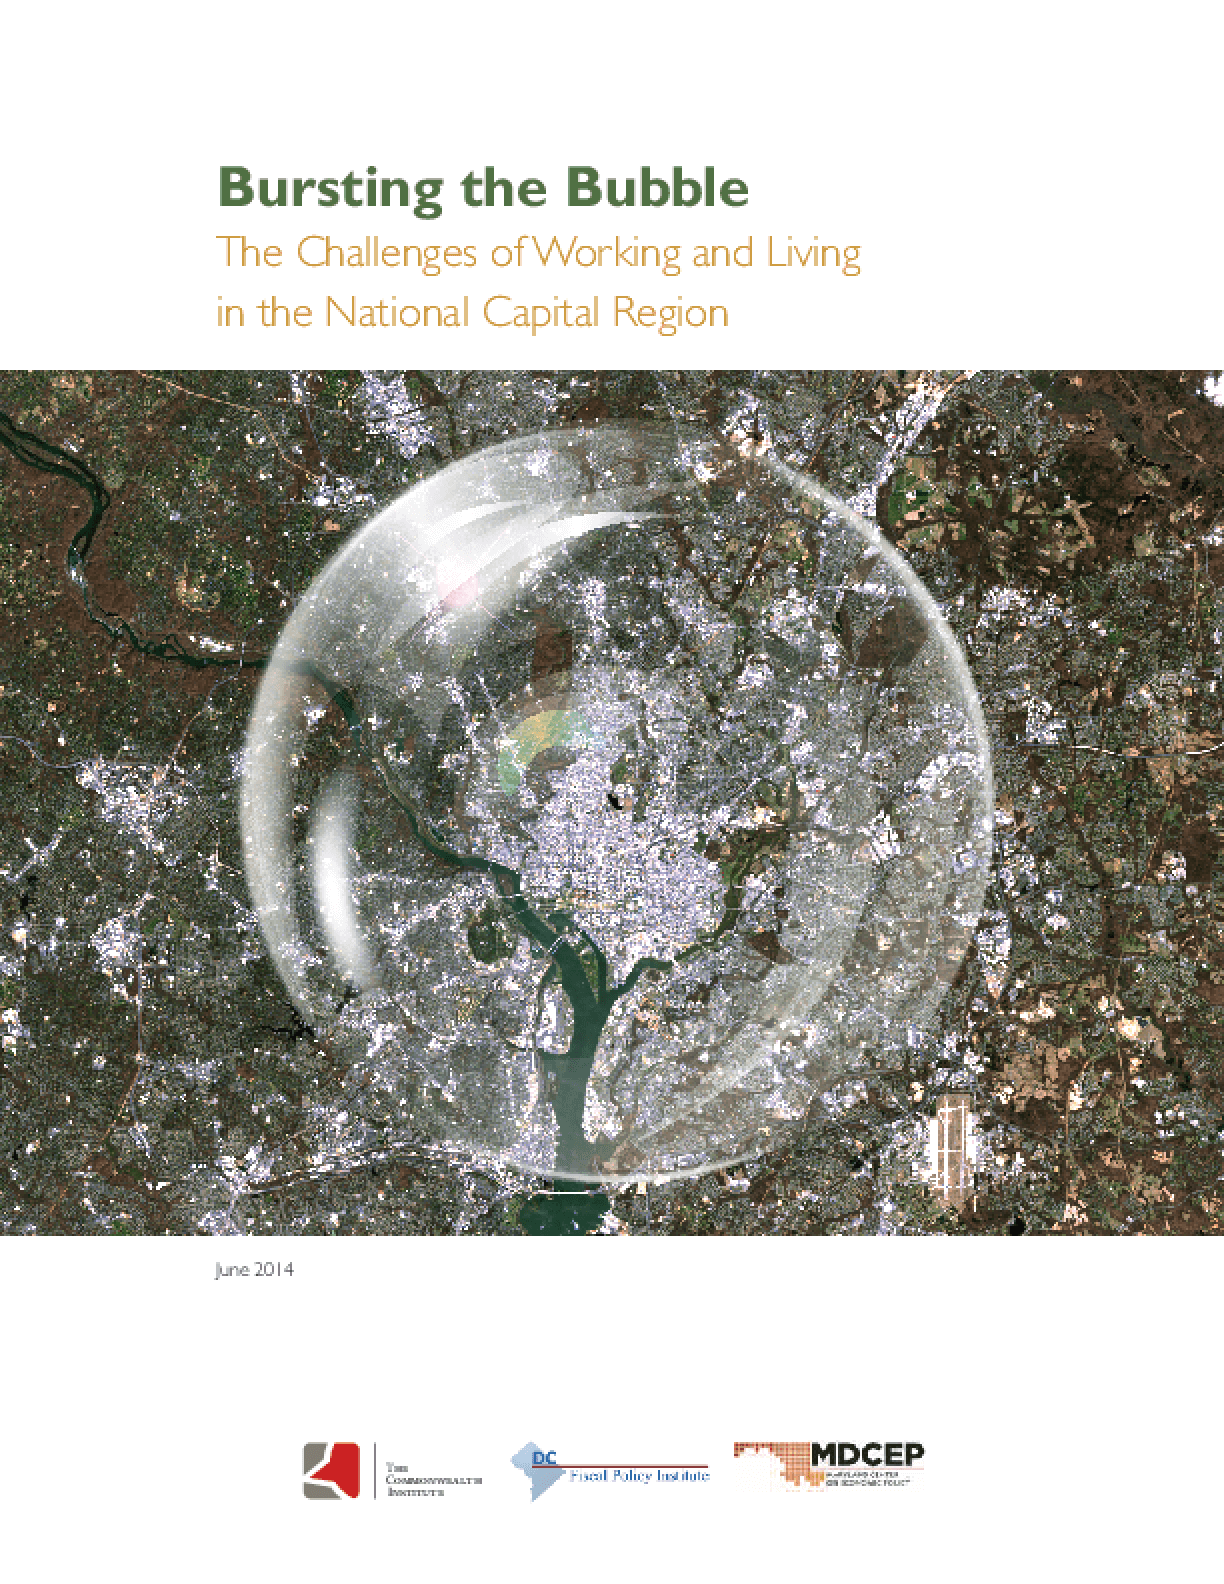 Bursting the Bubble: The Challenges of Working and Living in the National Capital Region